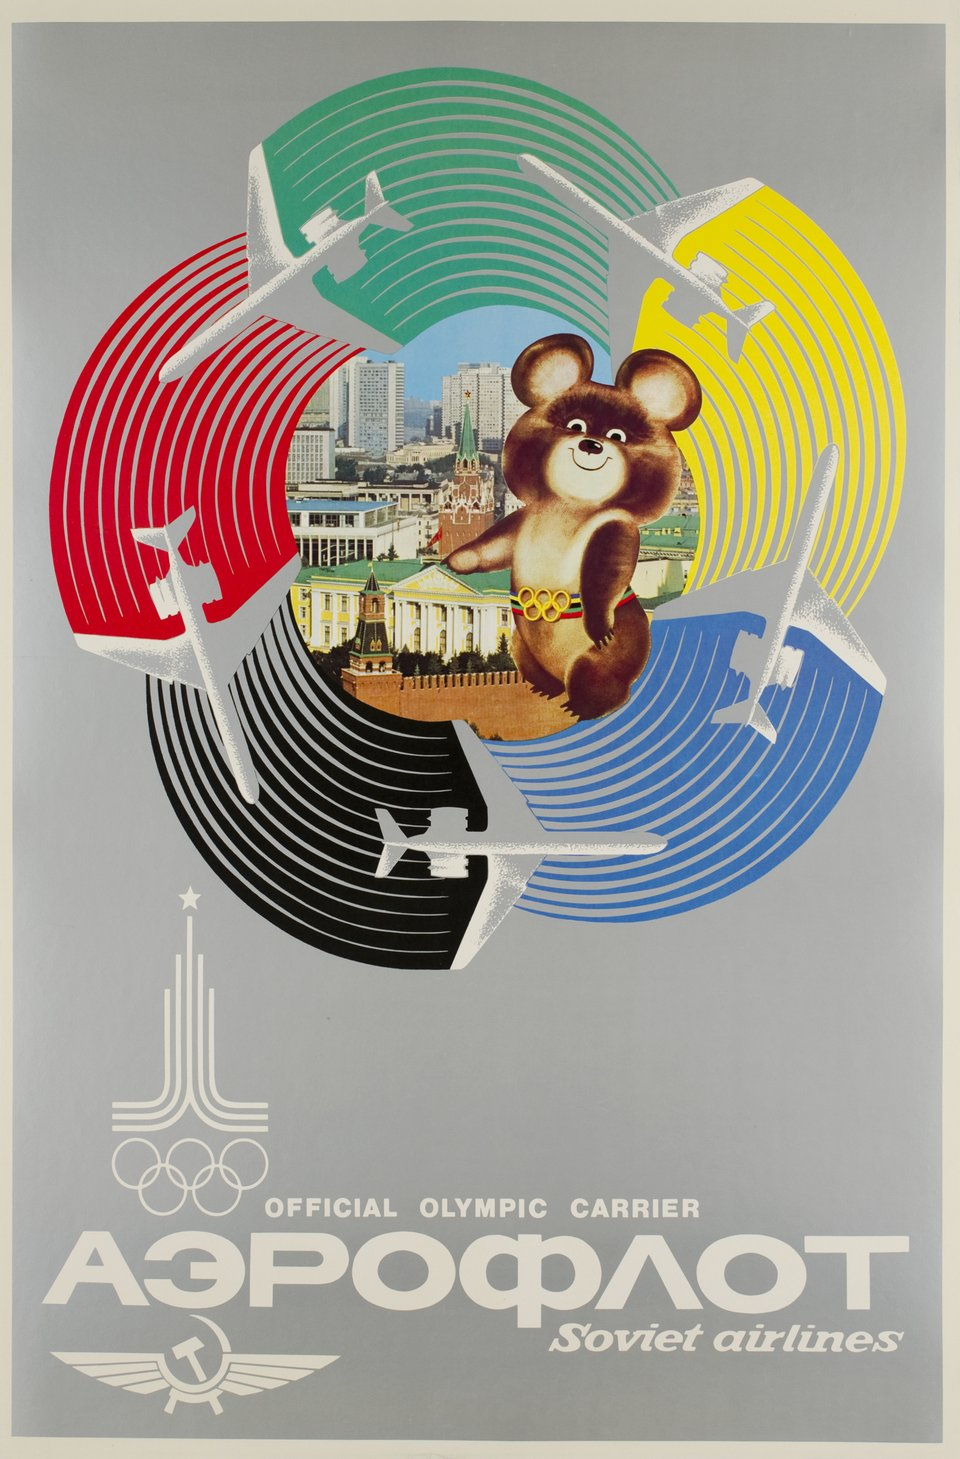 Aeroflot official Olympic Carrier, Soviet Airlines – Affiche ancienne – ANONYME – 1980